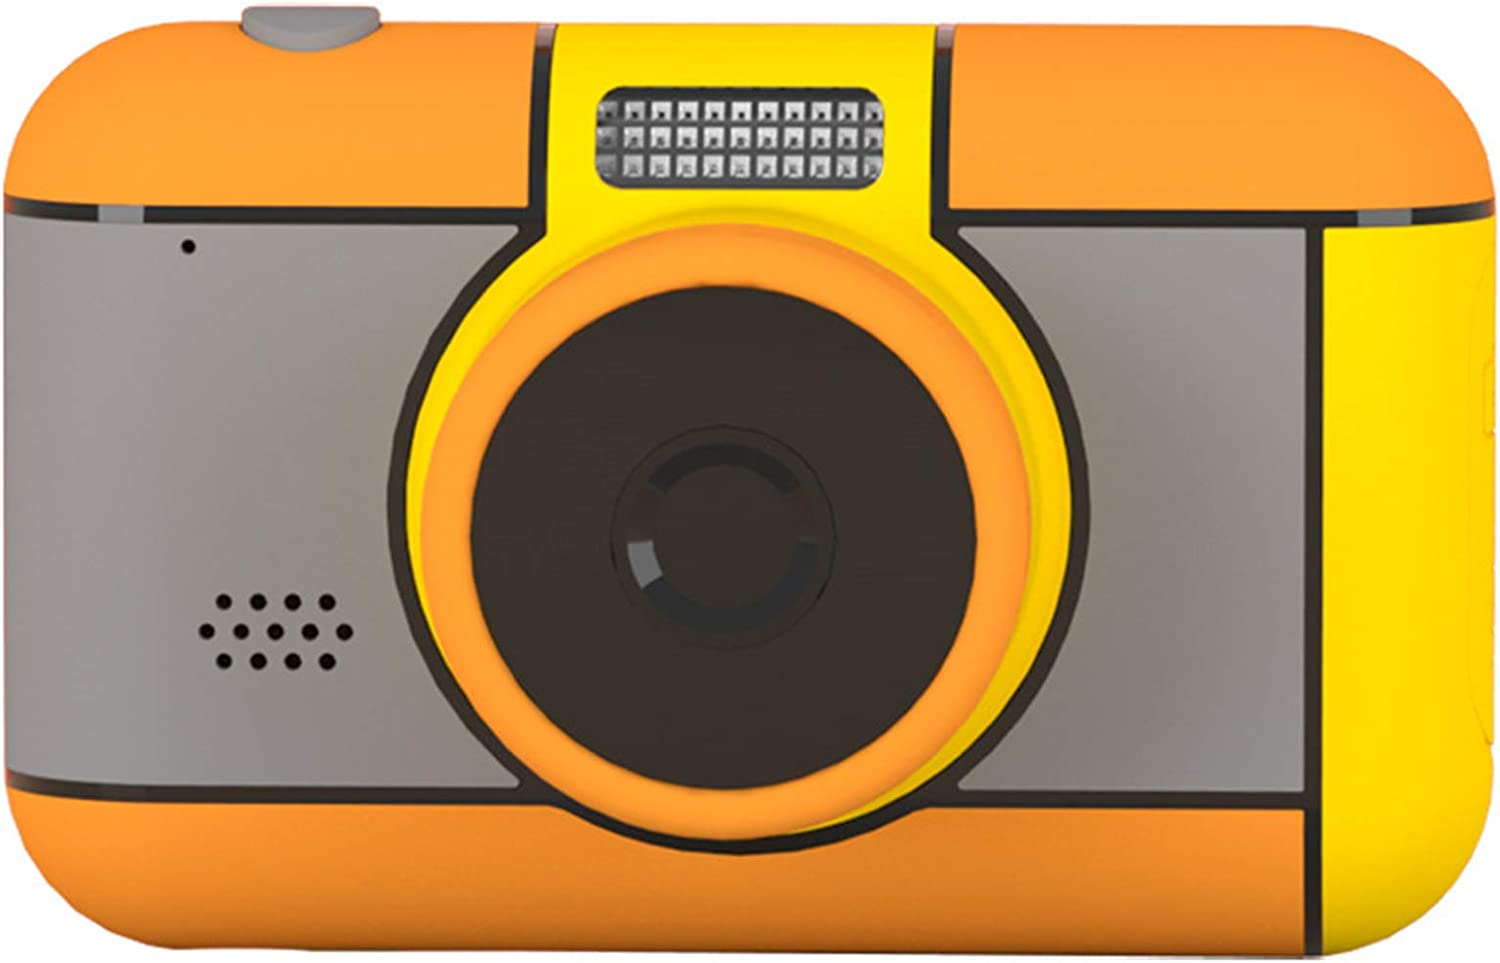 Camera 2.4-Inch High-Definition Display 26 Million Pixels Year-end annual account Super intense SALE with